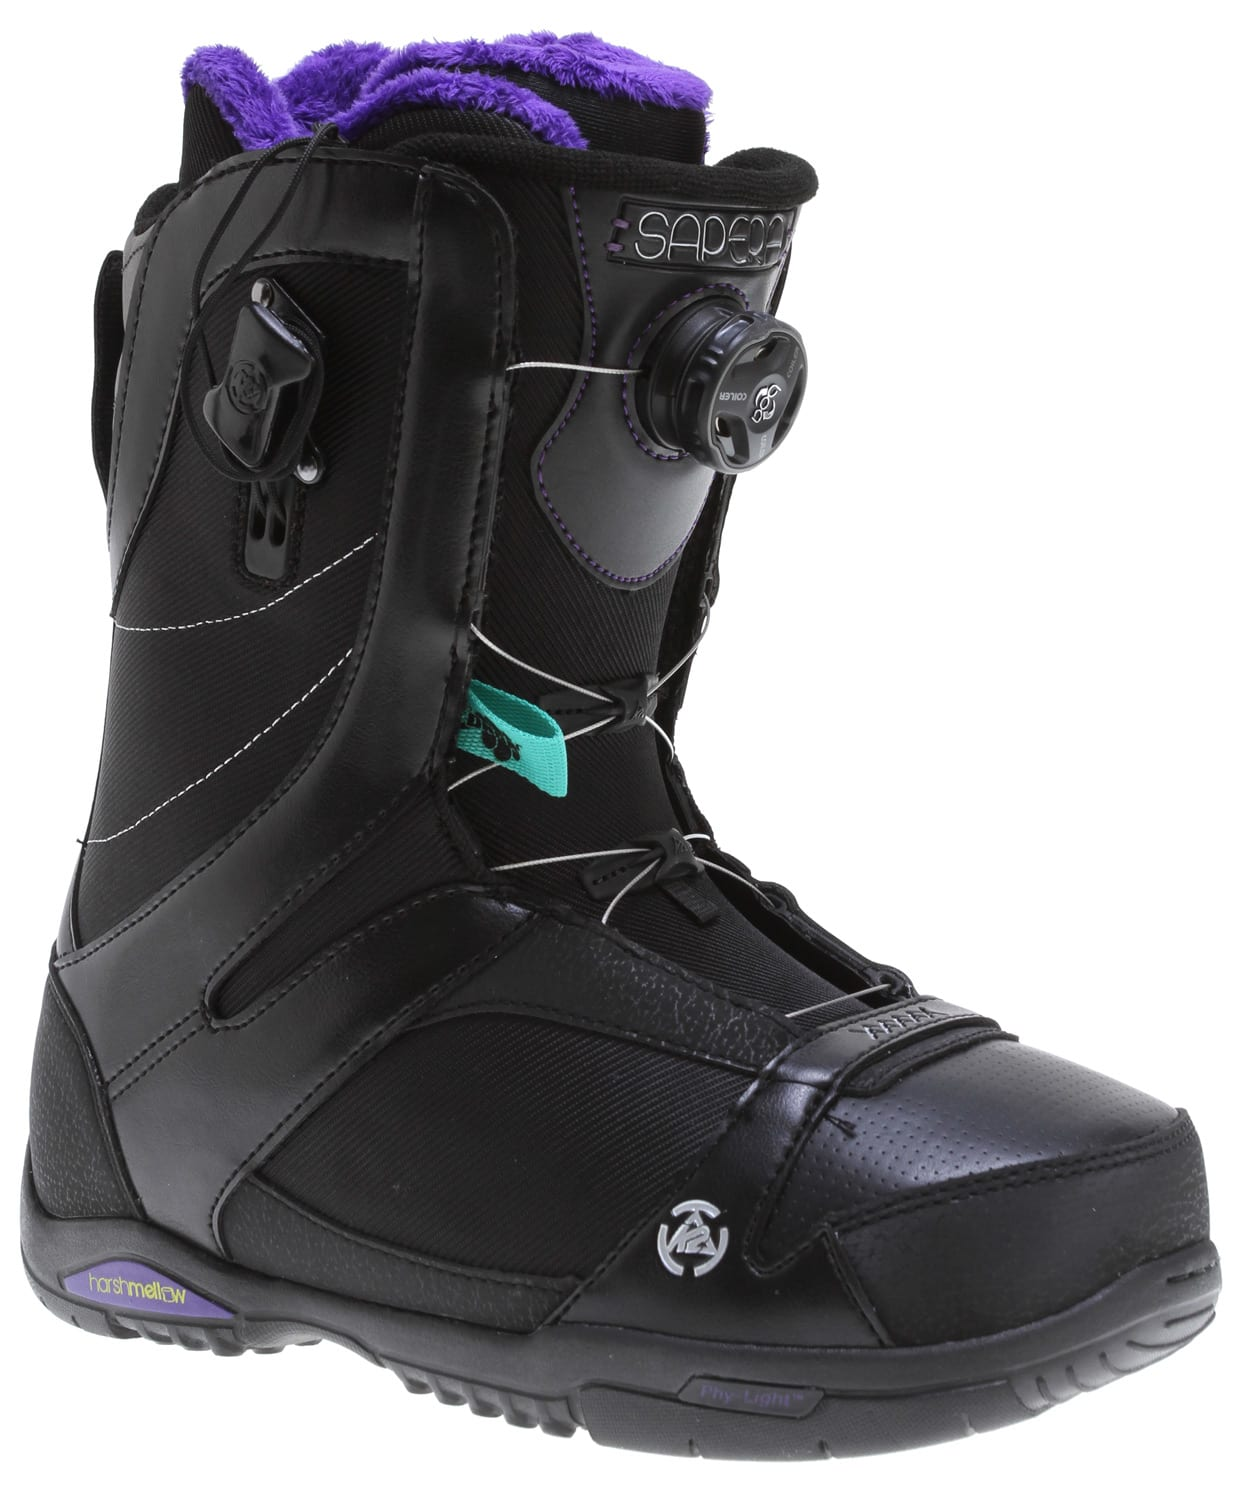 on sale k2 sapera snowboard boots womens up to 60